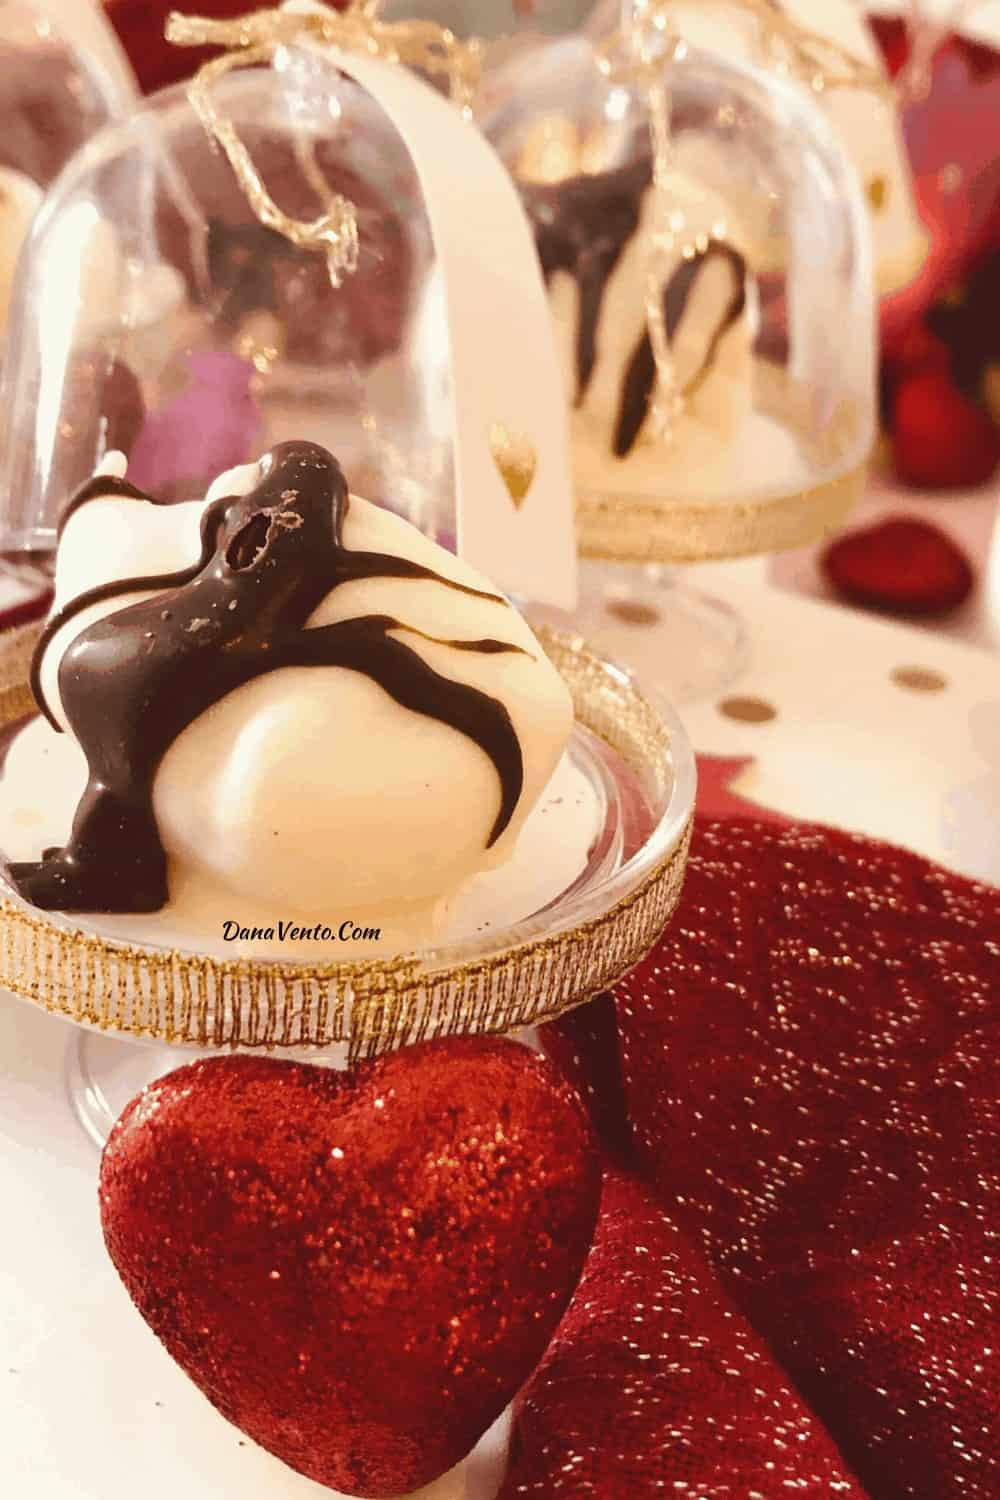 dome globe with white chocolate covered cherry